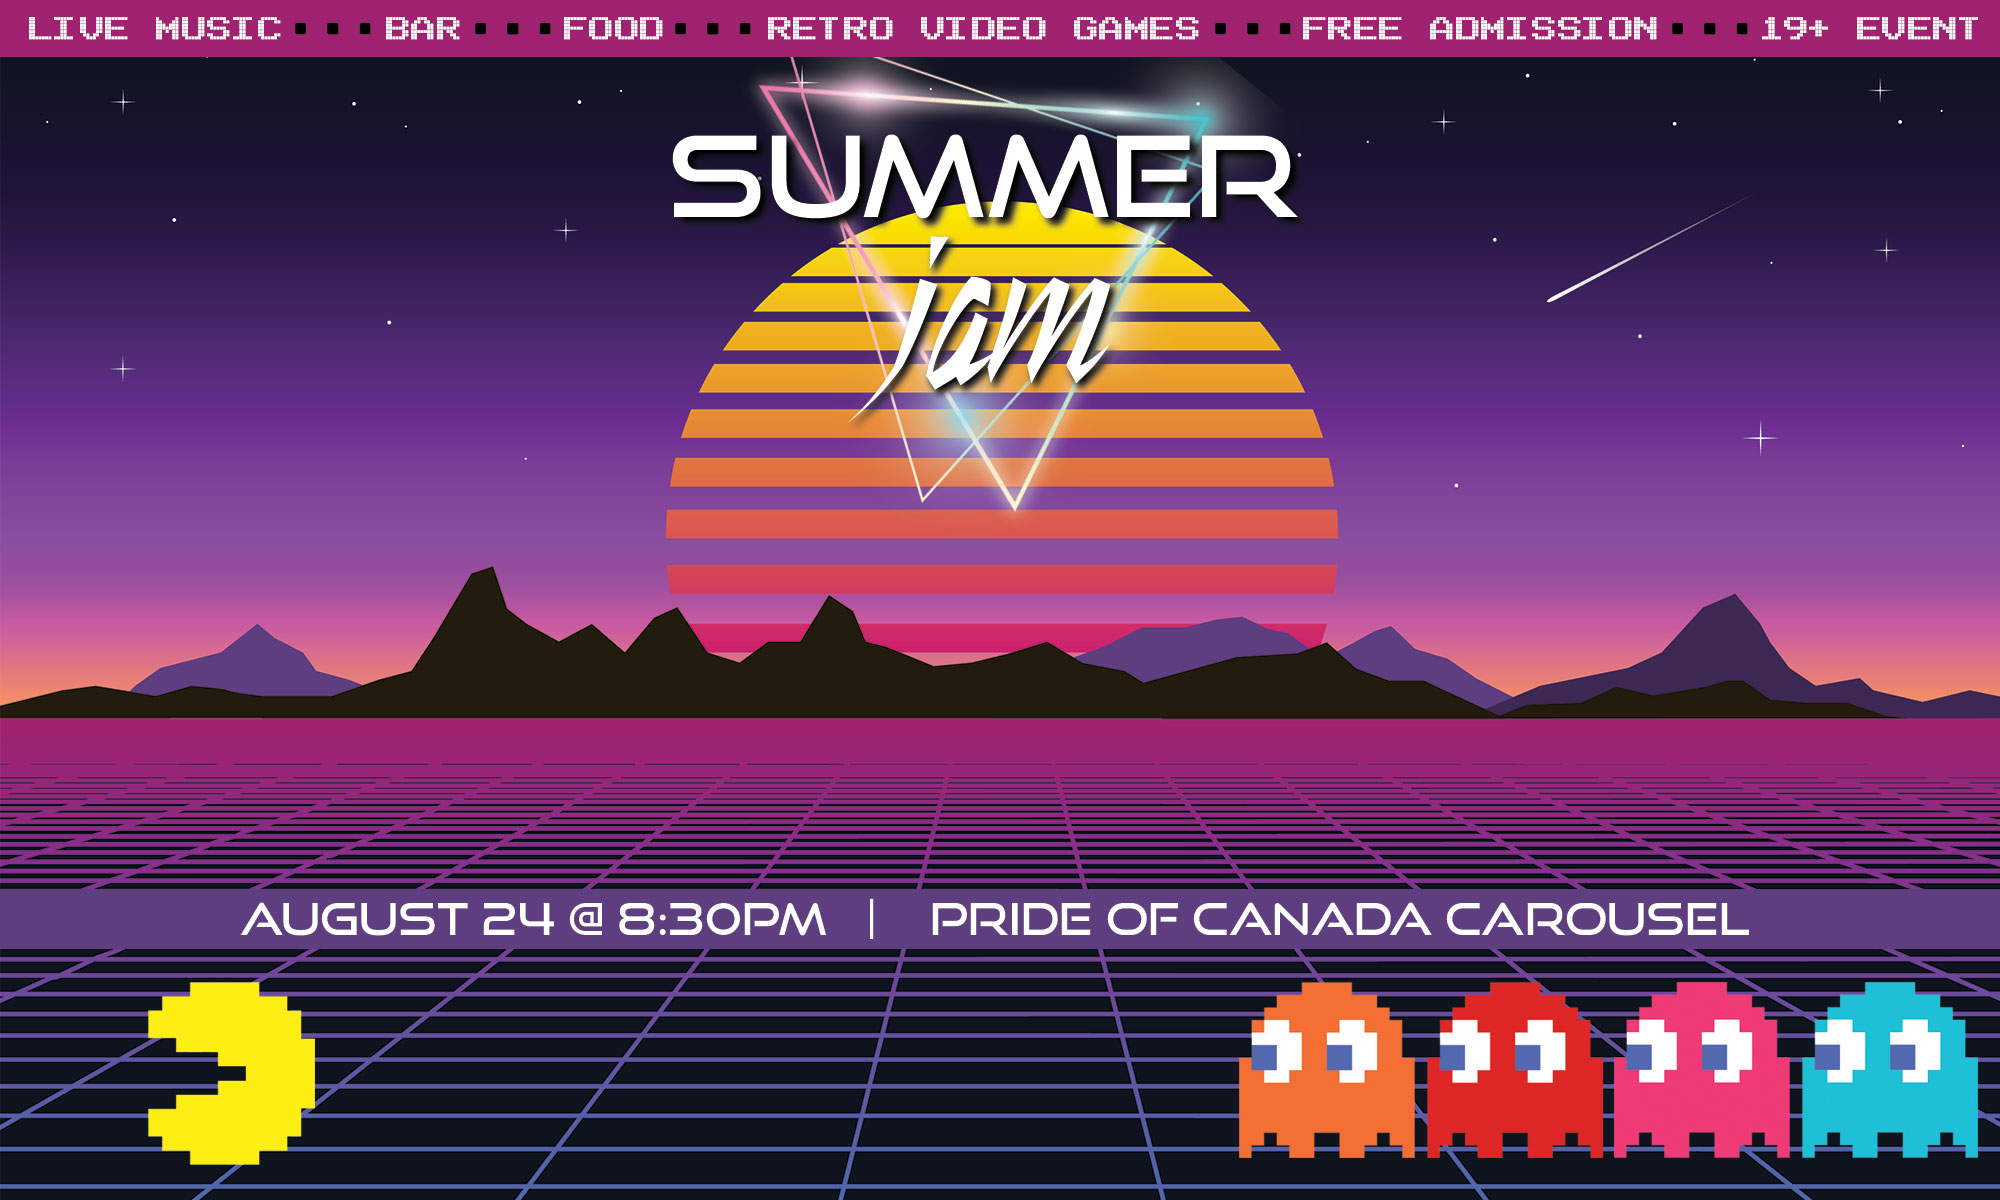 TOTALLY AWESOME: SUMMER JAM PUTS THE SIZZLE IN YOUR SUMMER